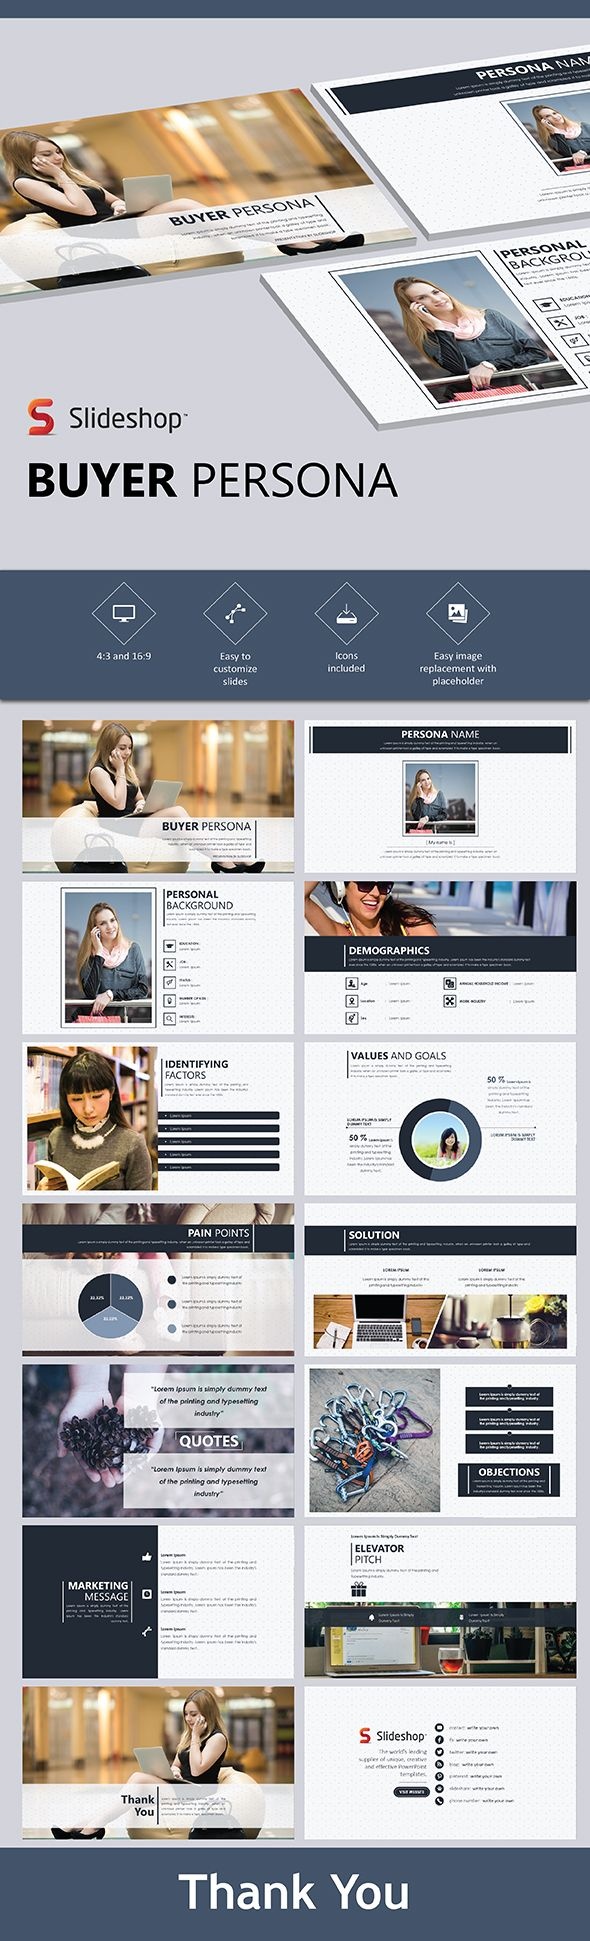 buyer persona | presentation templates, template and creative, Presentation templates